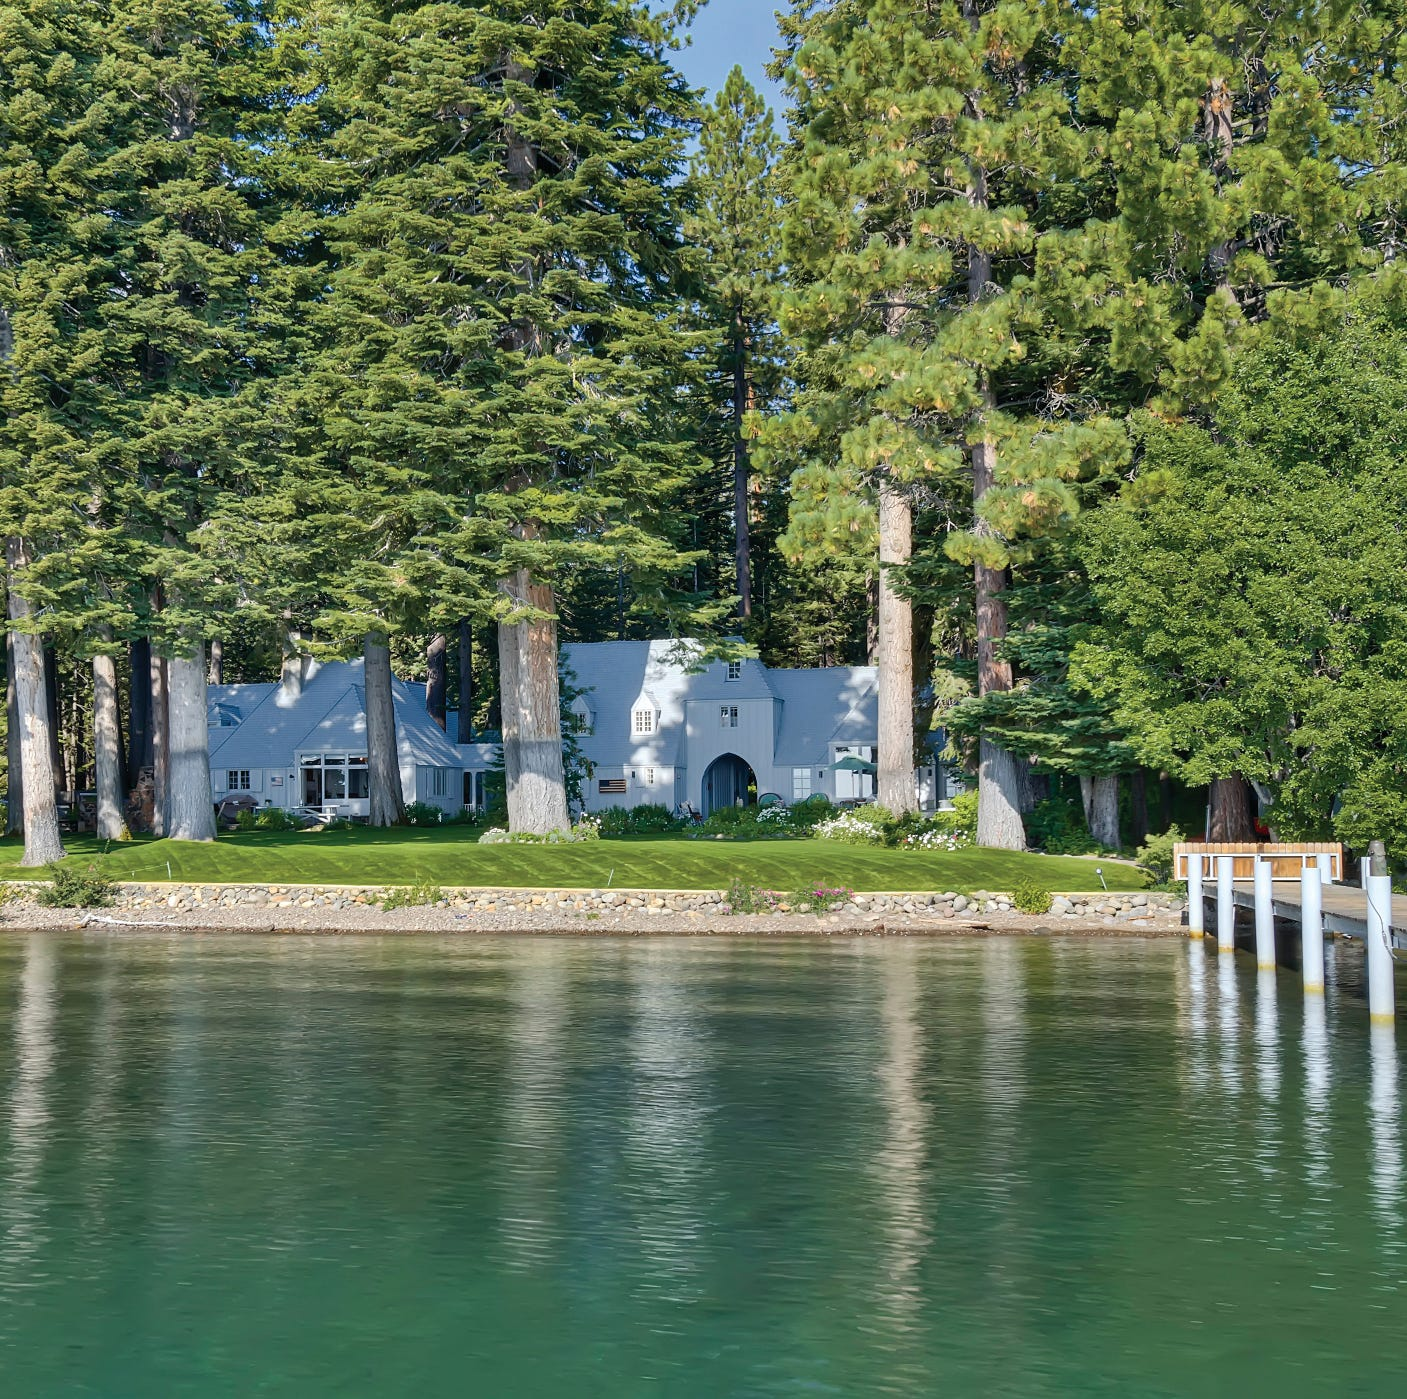 Facebook CEO Mark Zuckerberg buys $59 million spread at Lake Tahoe